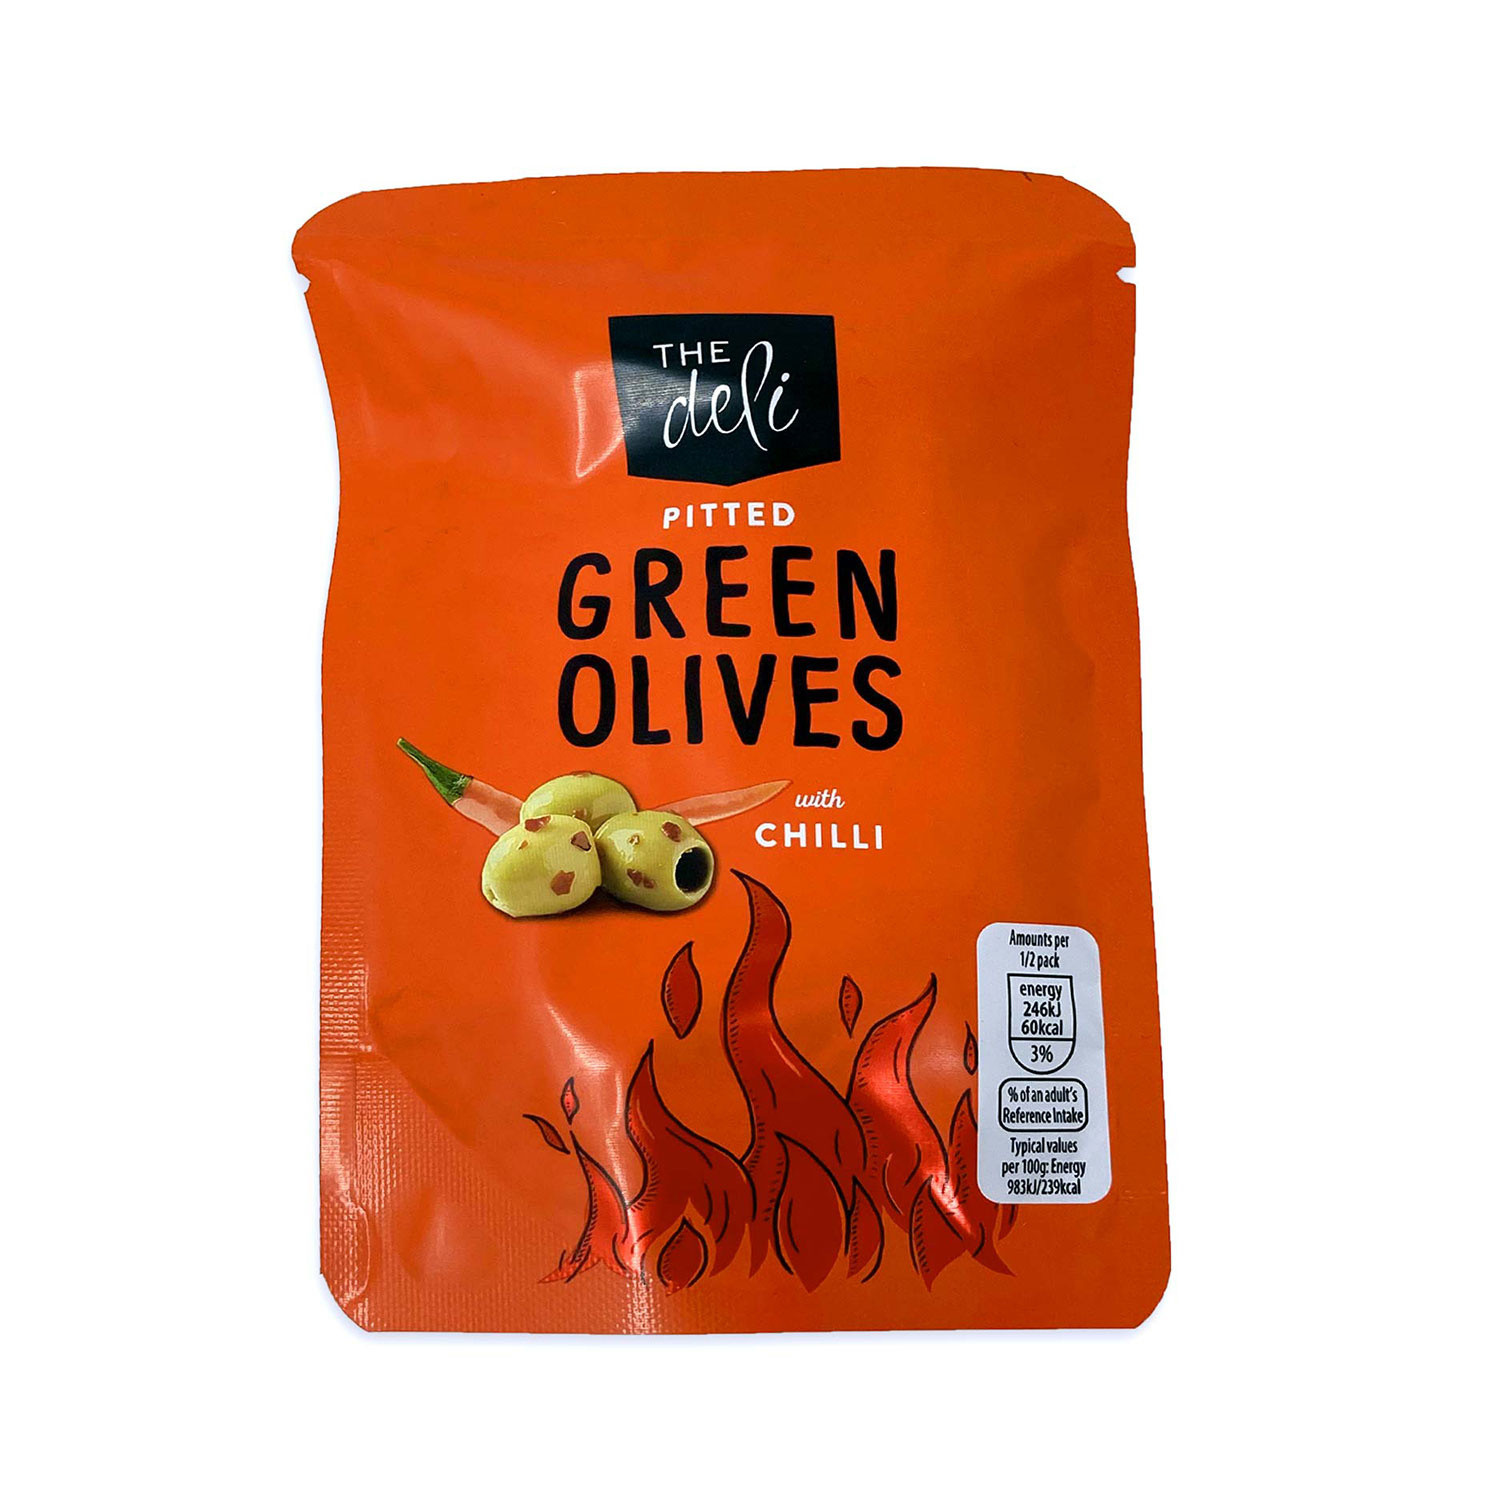 Pitted Green Olives With Chilli